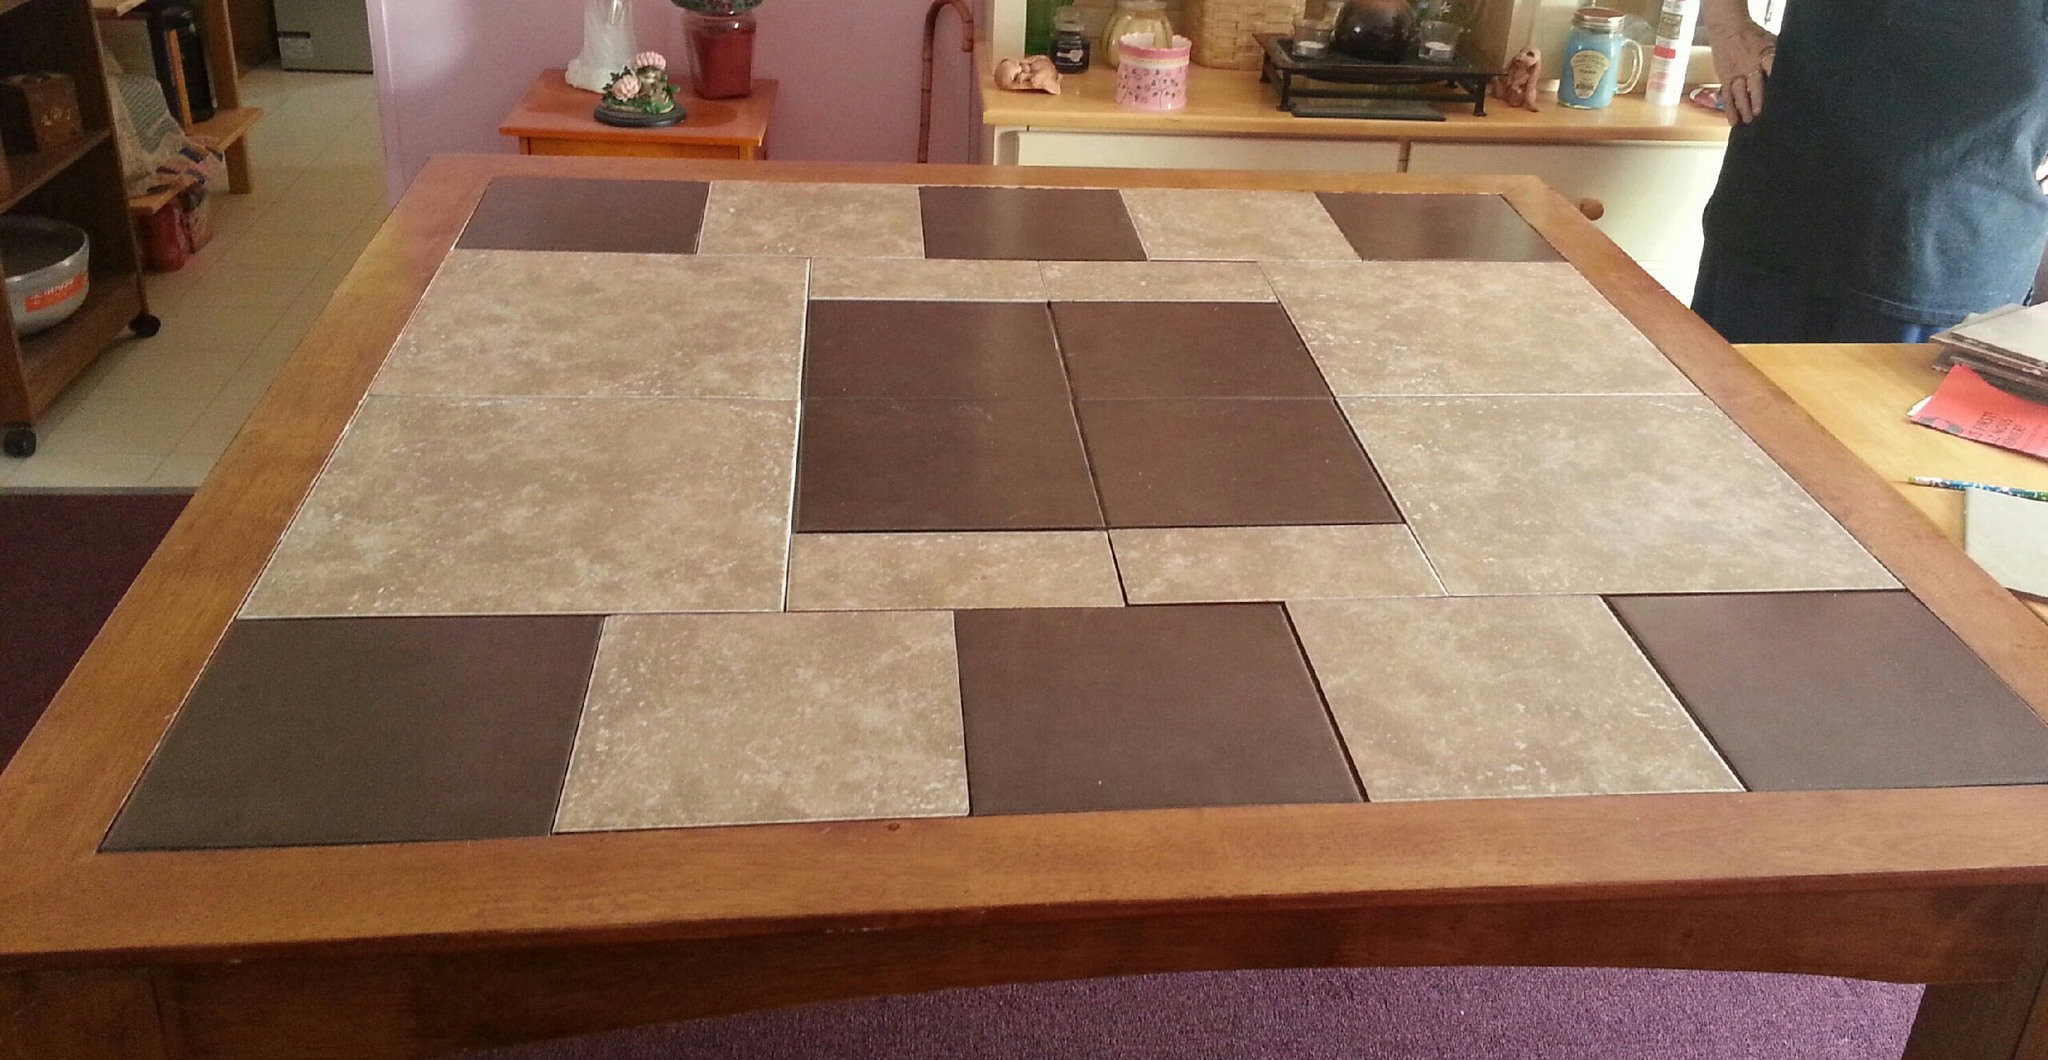 ceramic tile and wood play well